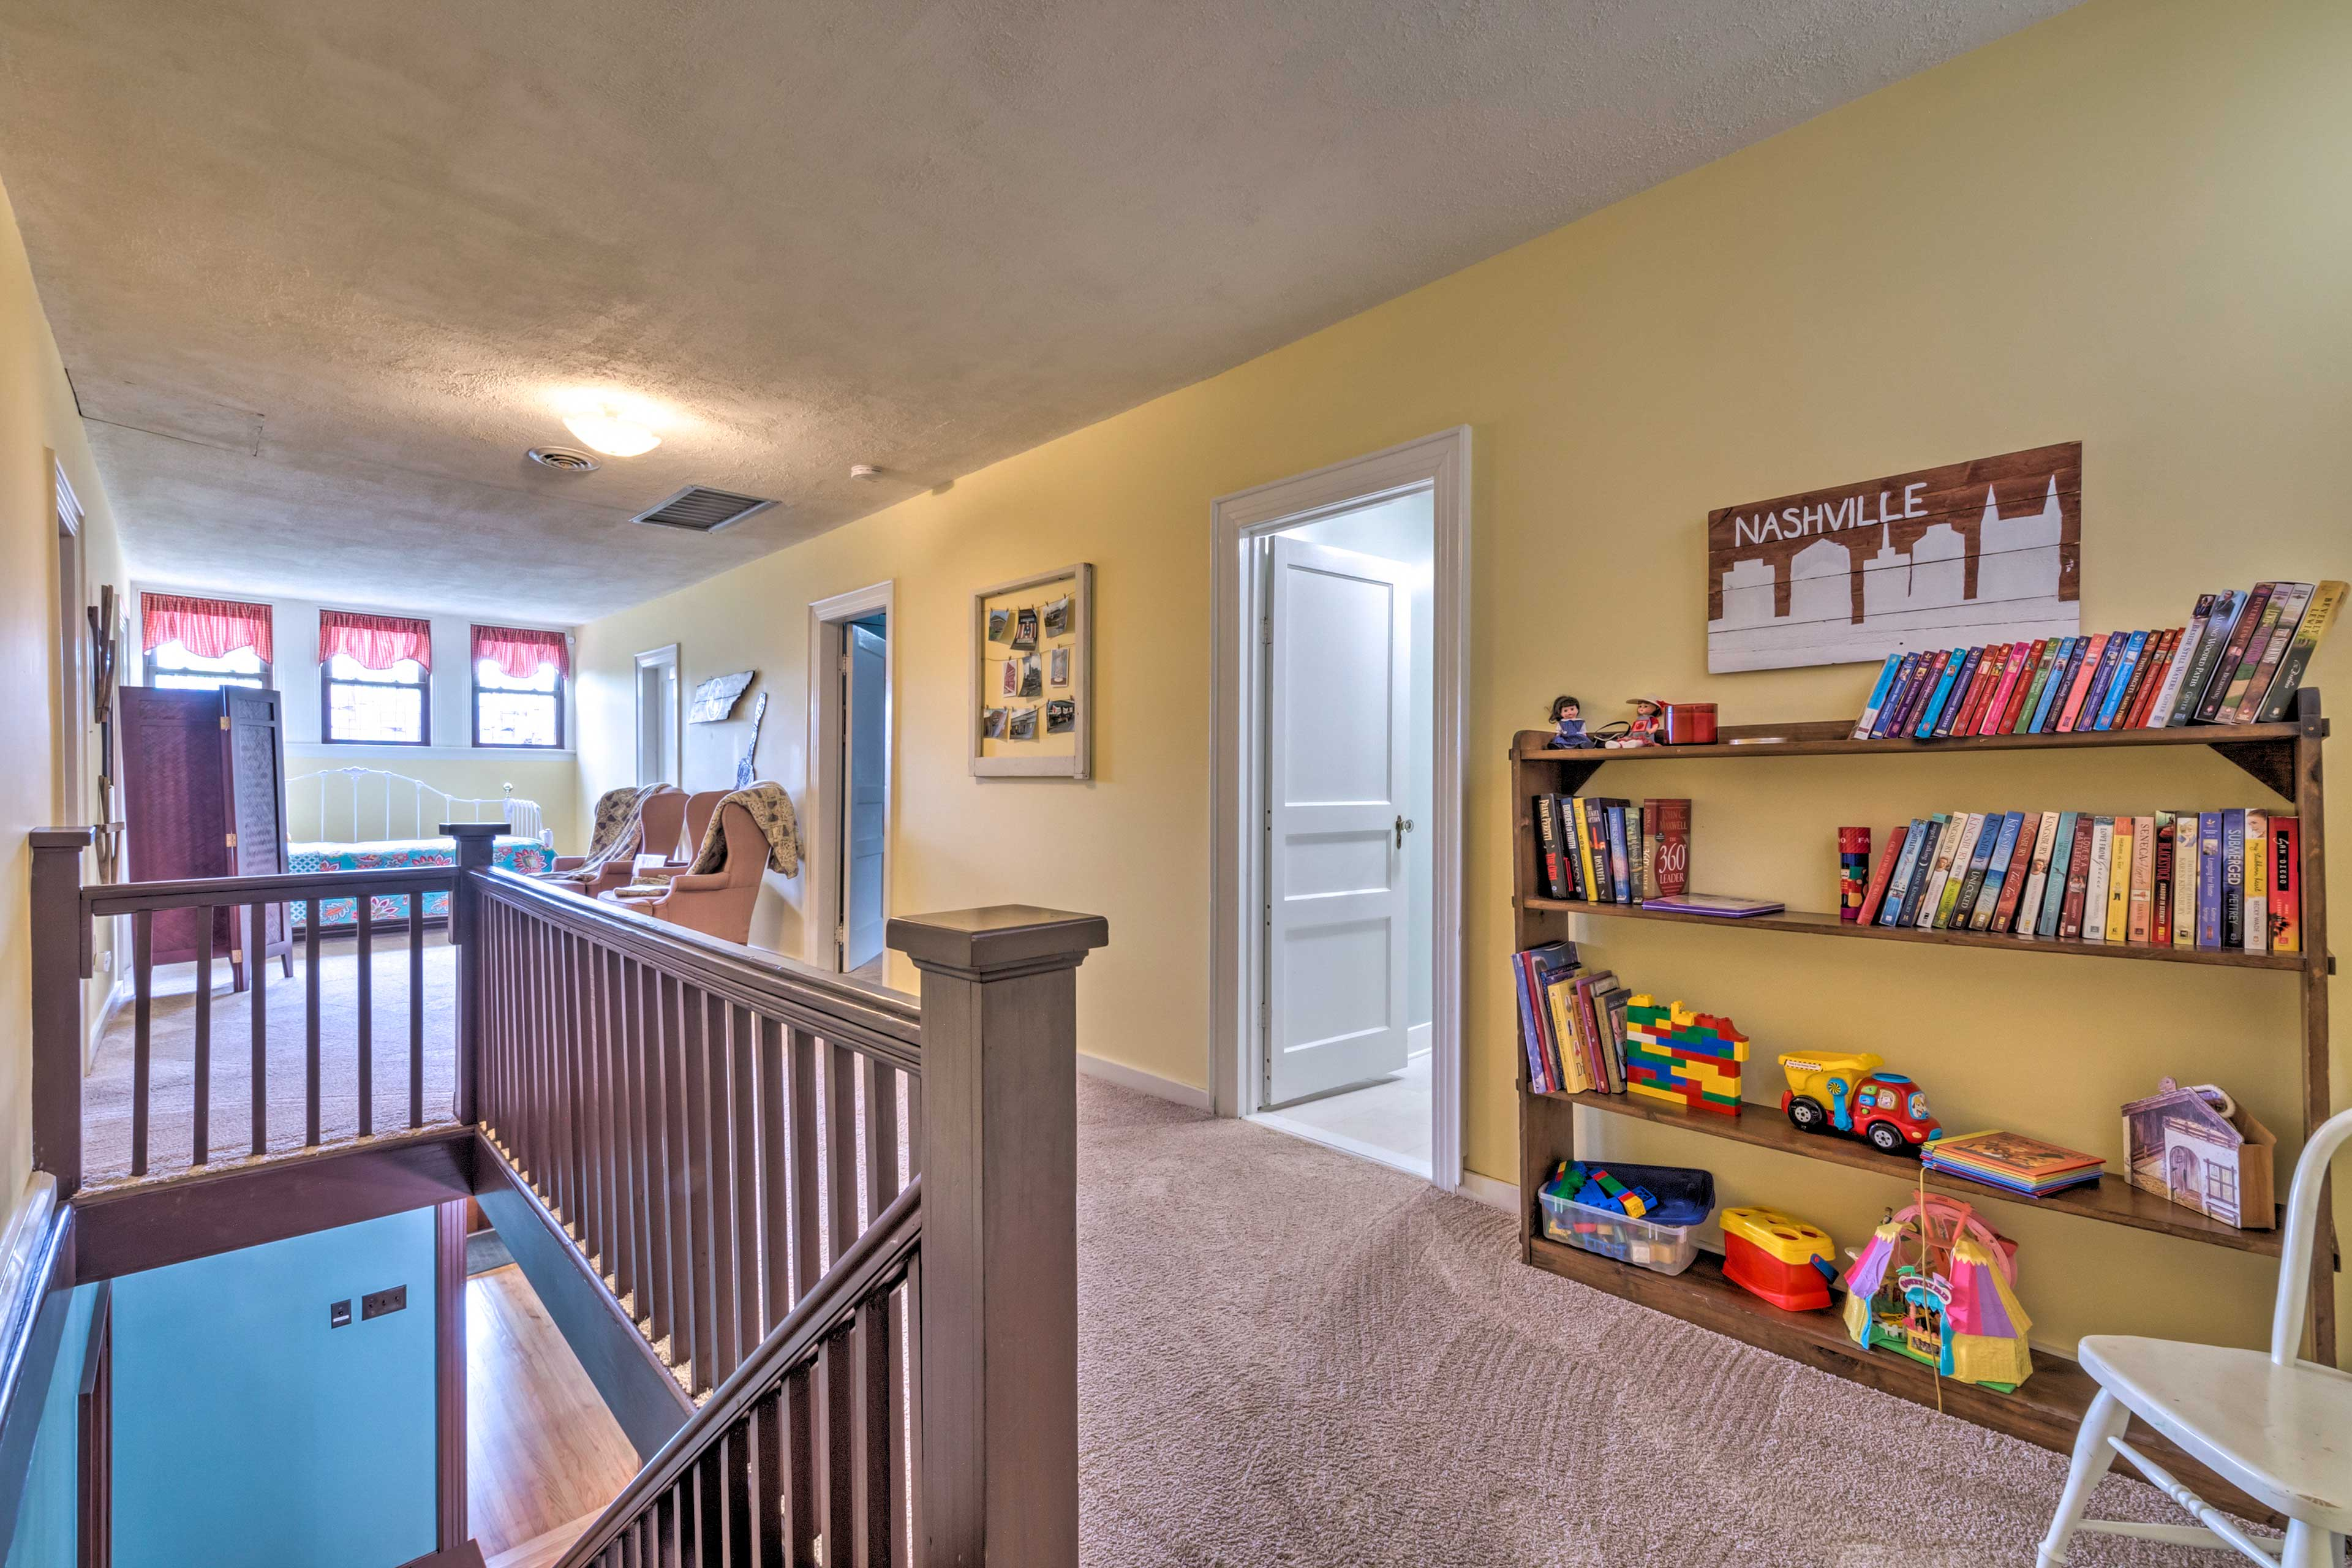 Head upstairs to find more bedrooms and a book shelf!